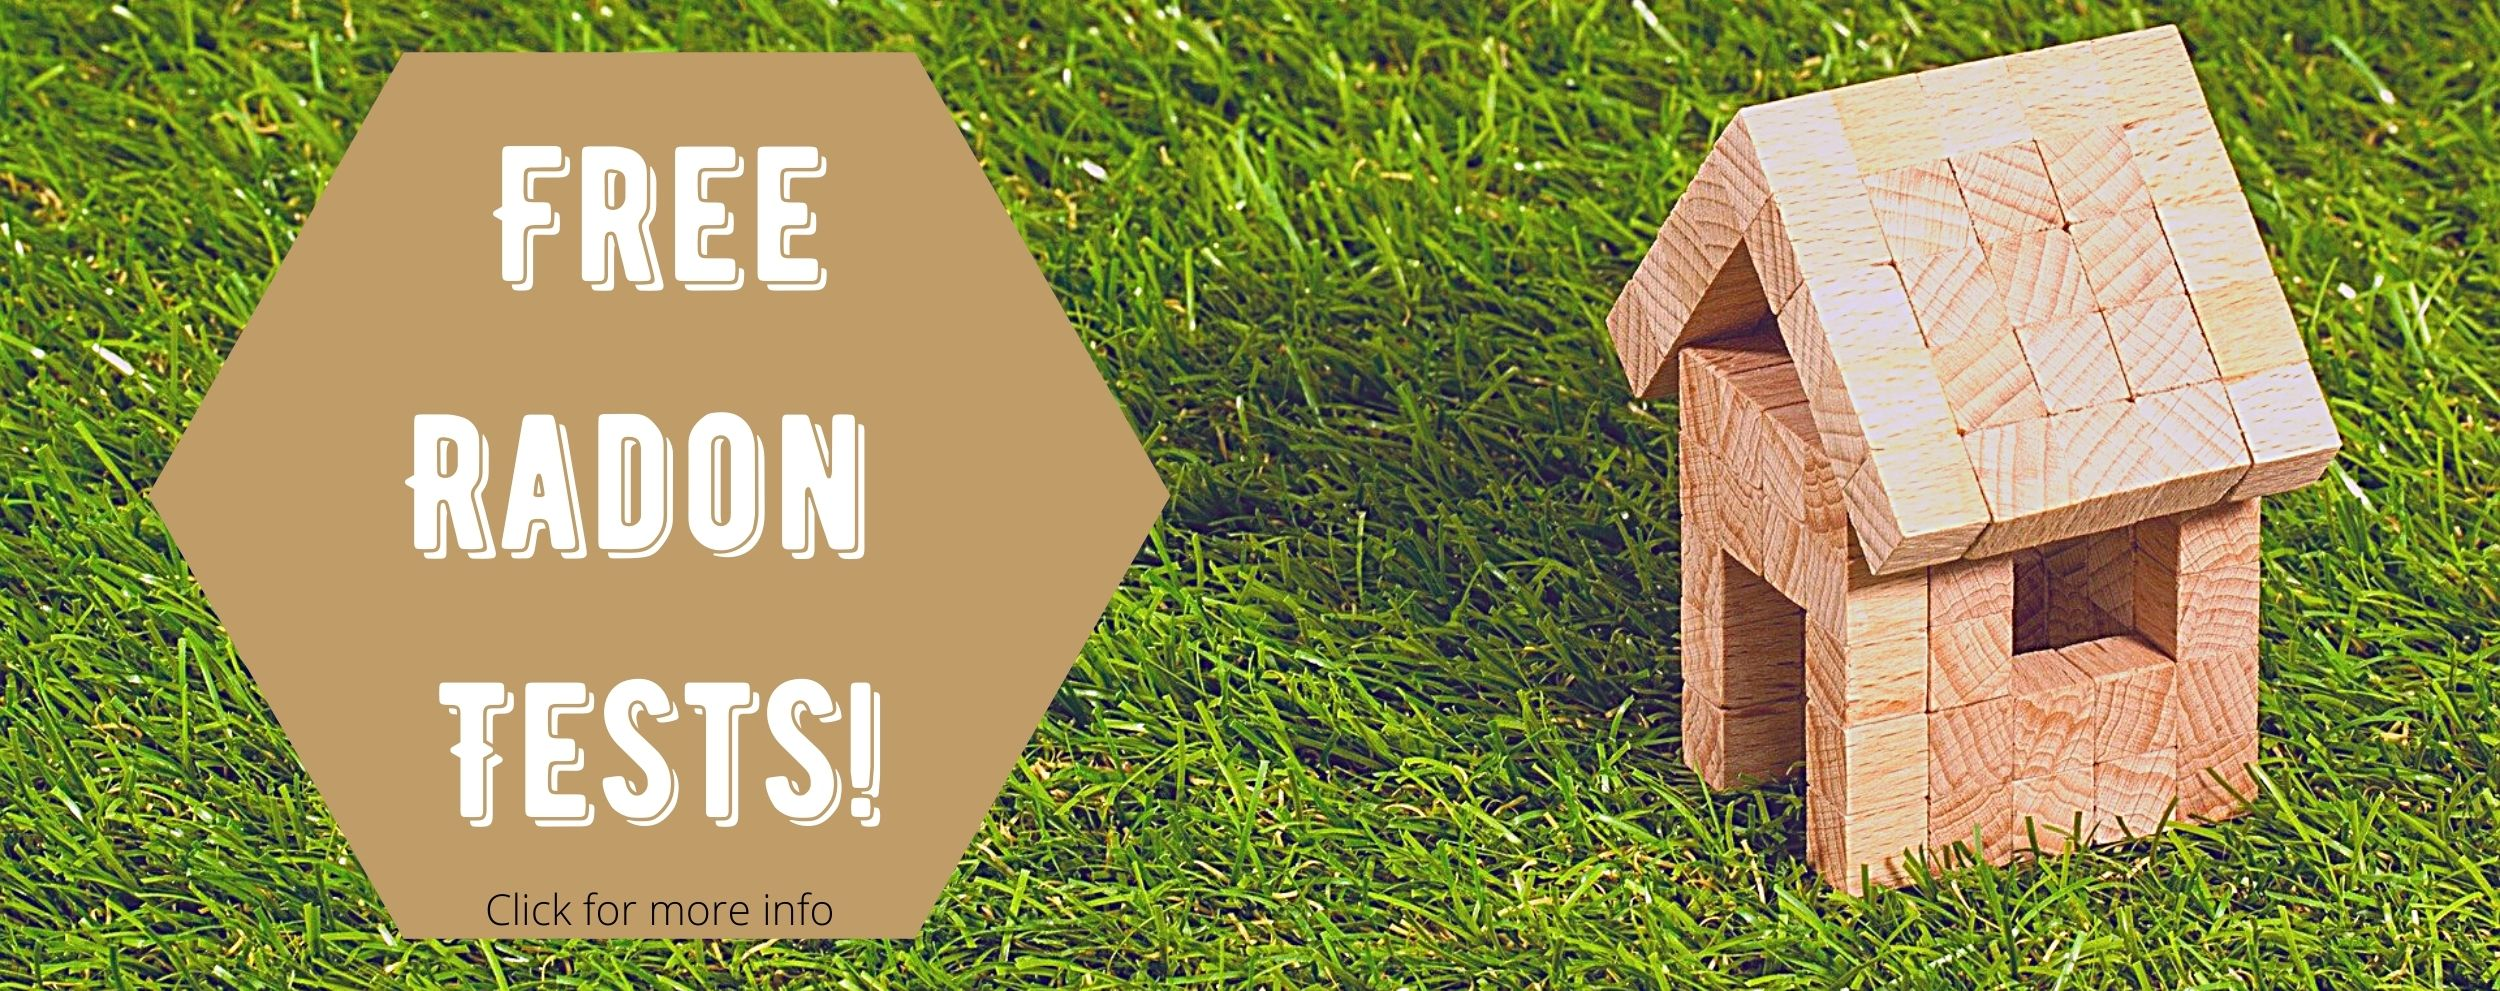 Free Radon Test - Click here for more info & to apply!